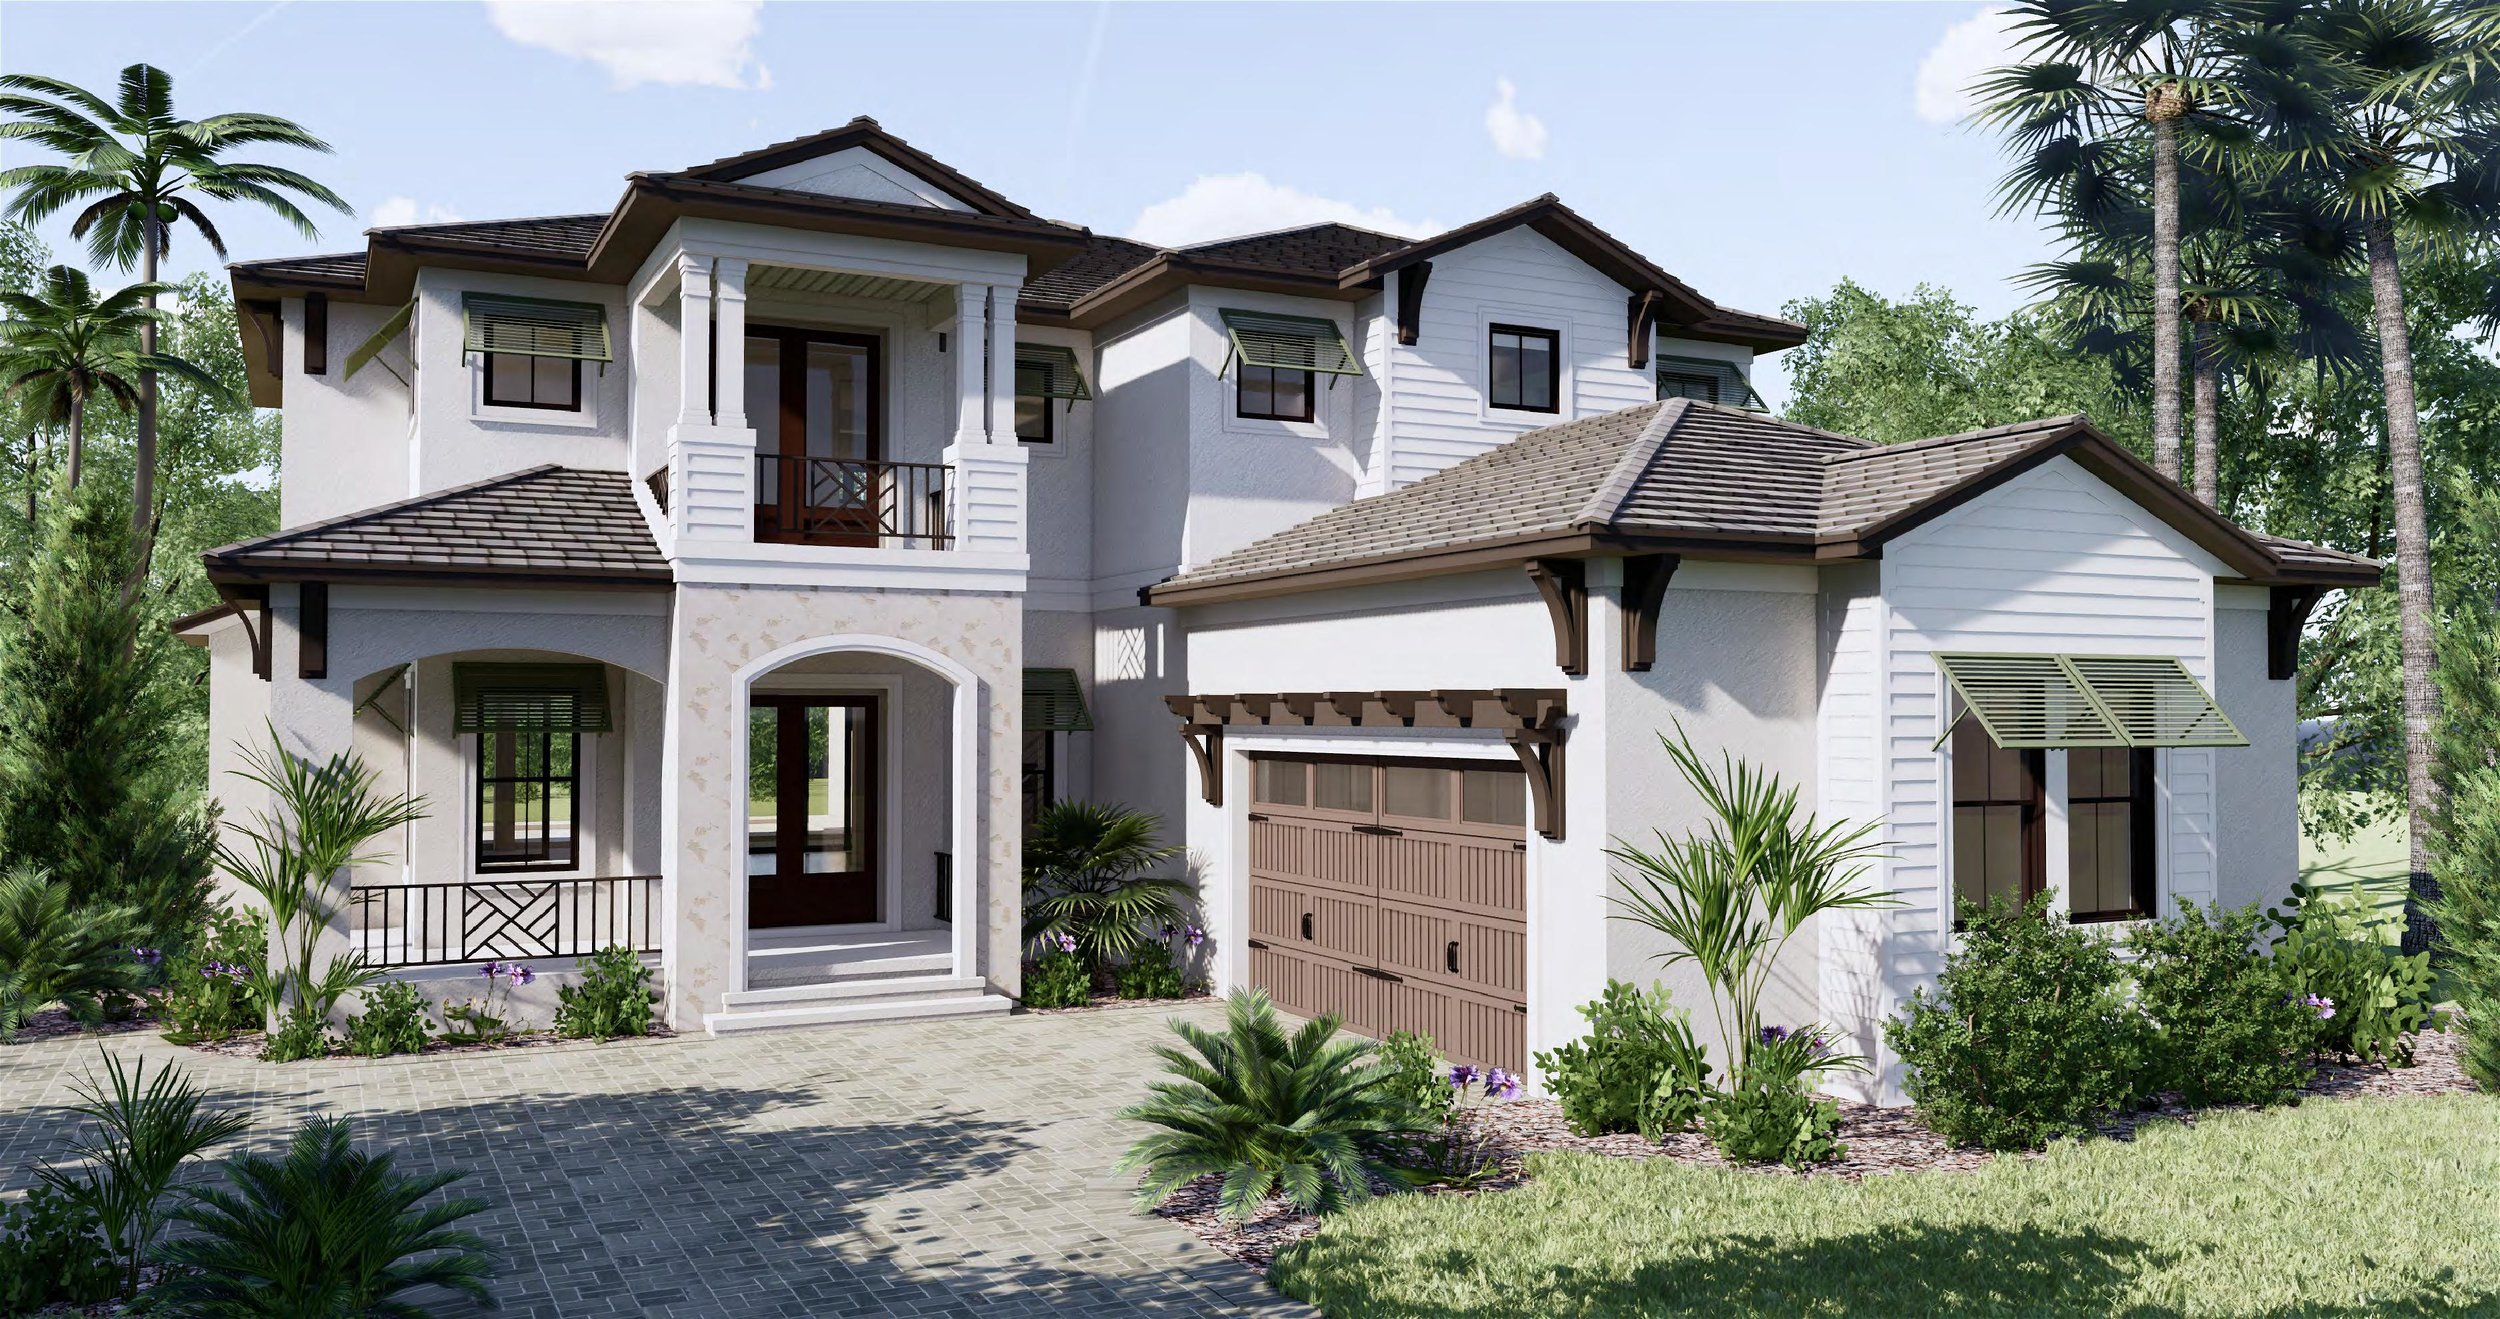 Pages from MAJESTIK UPDATED EXTERIOR 03-page-001.jpg